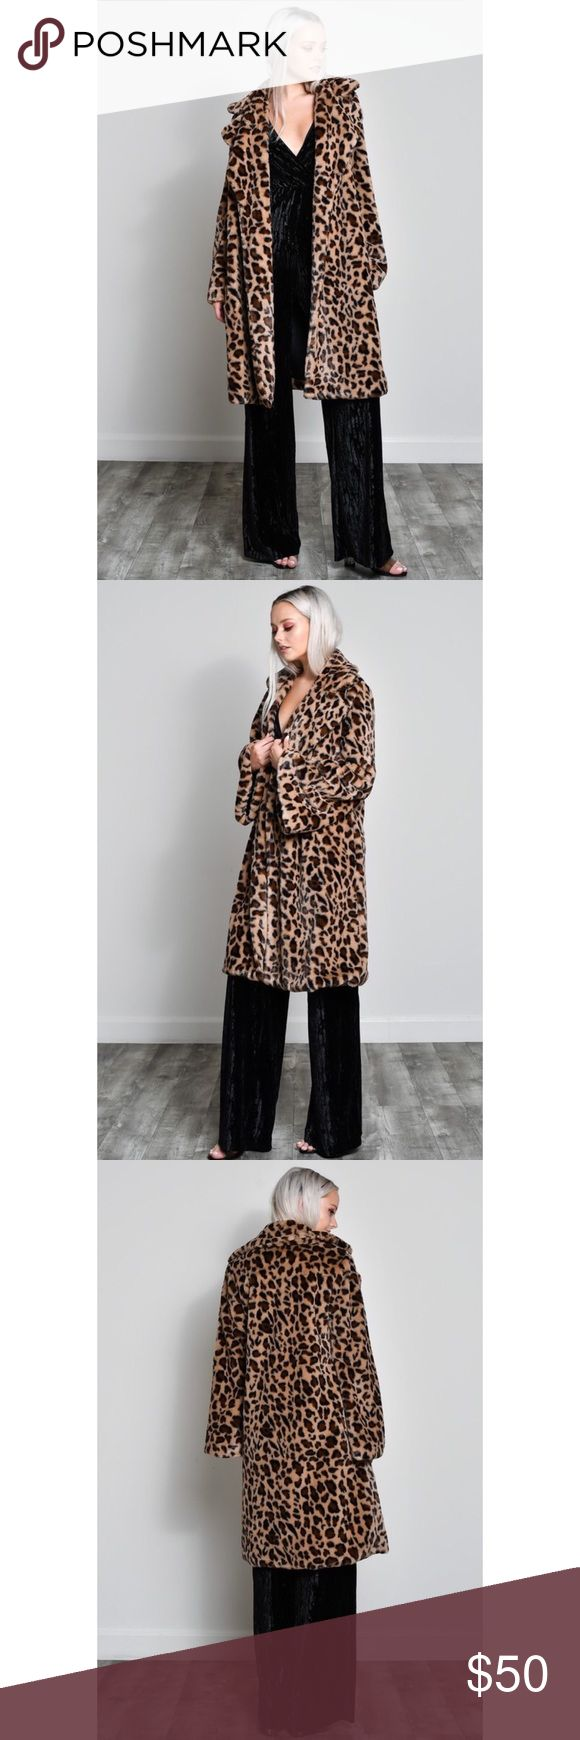 Knee length leopard coat Very cozy and warm coat. On trend leopard print. Knee length for most people depending on height. Oversized trench style. Most likely not waterproof, extremely soft faux fur material. Jackets & Coats Trench Coats